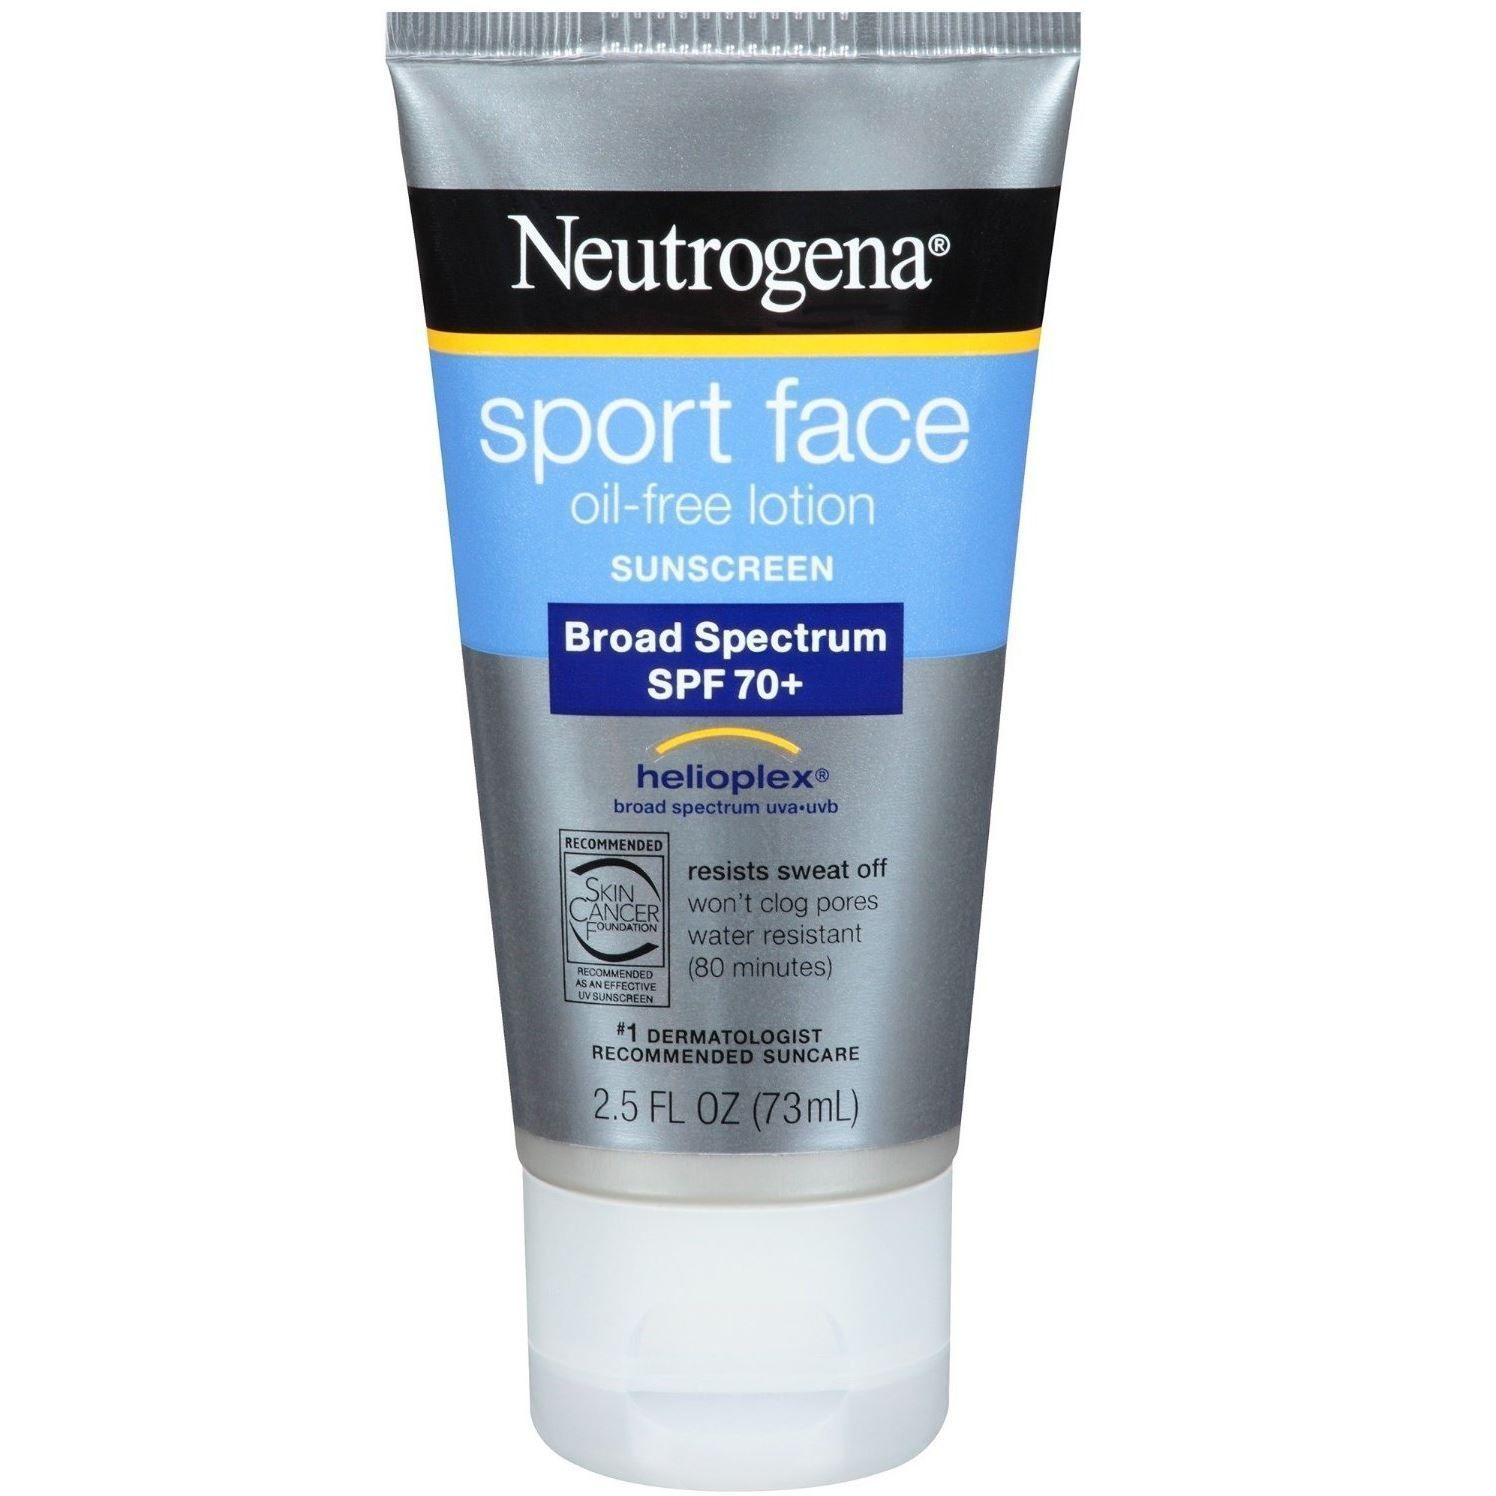 Sport Face Oil-Free Lotion Sunscreen with Broad Spectrum SPF 70+